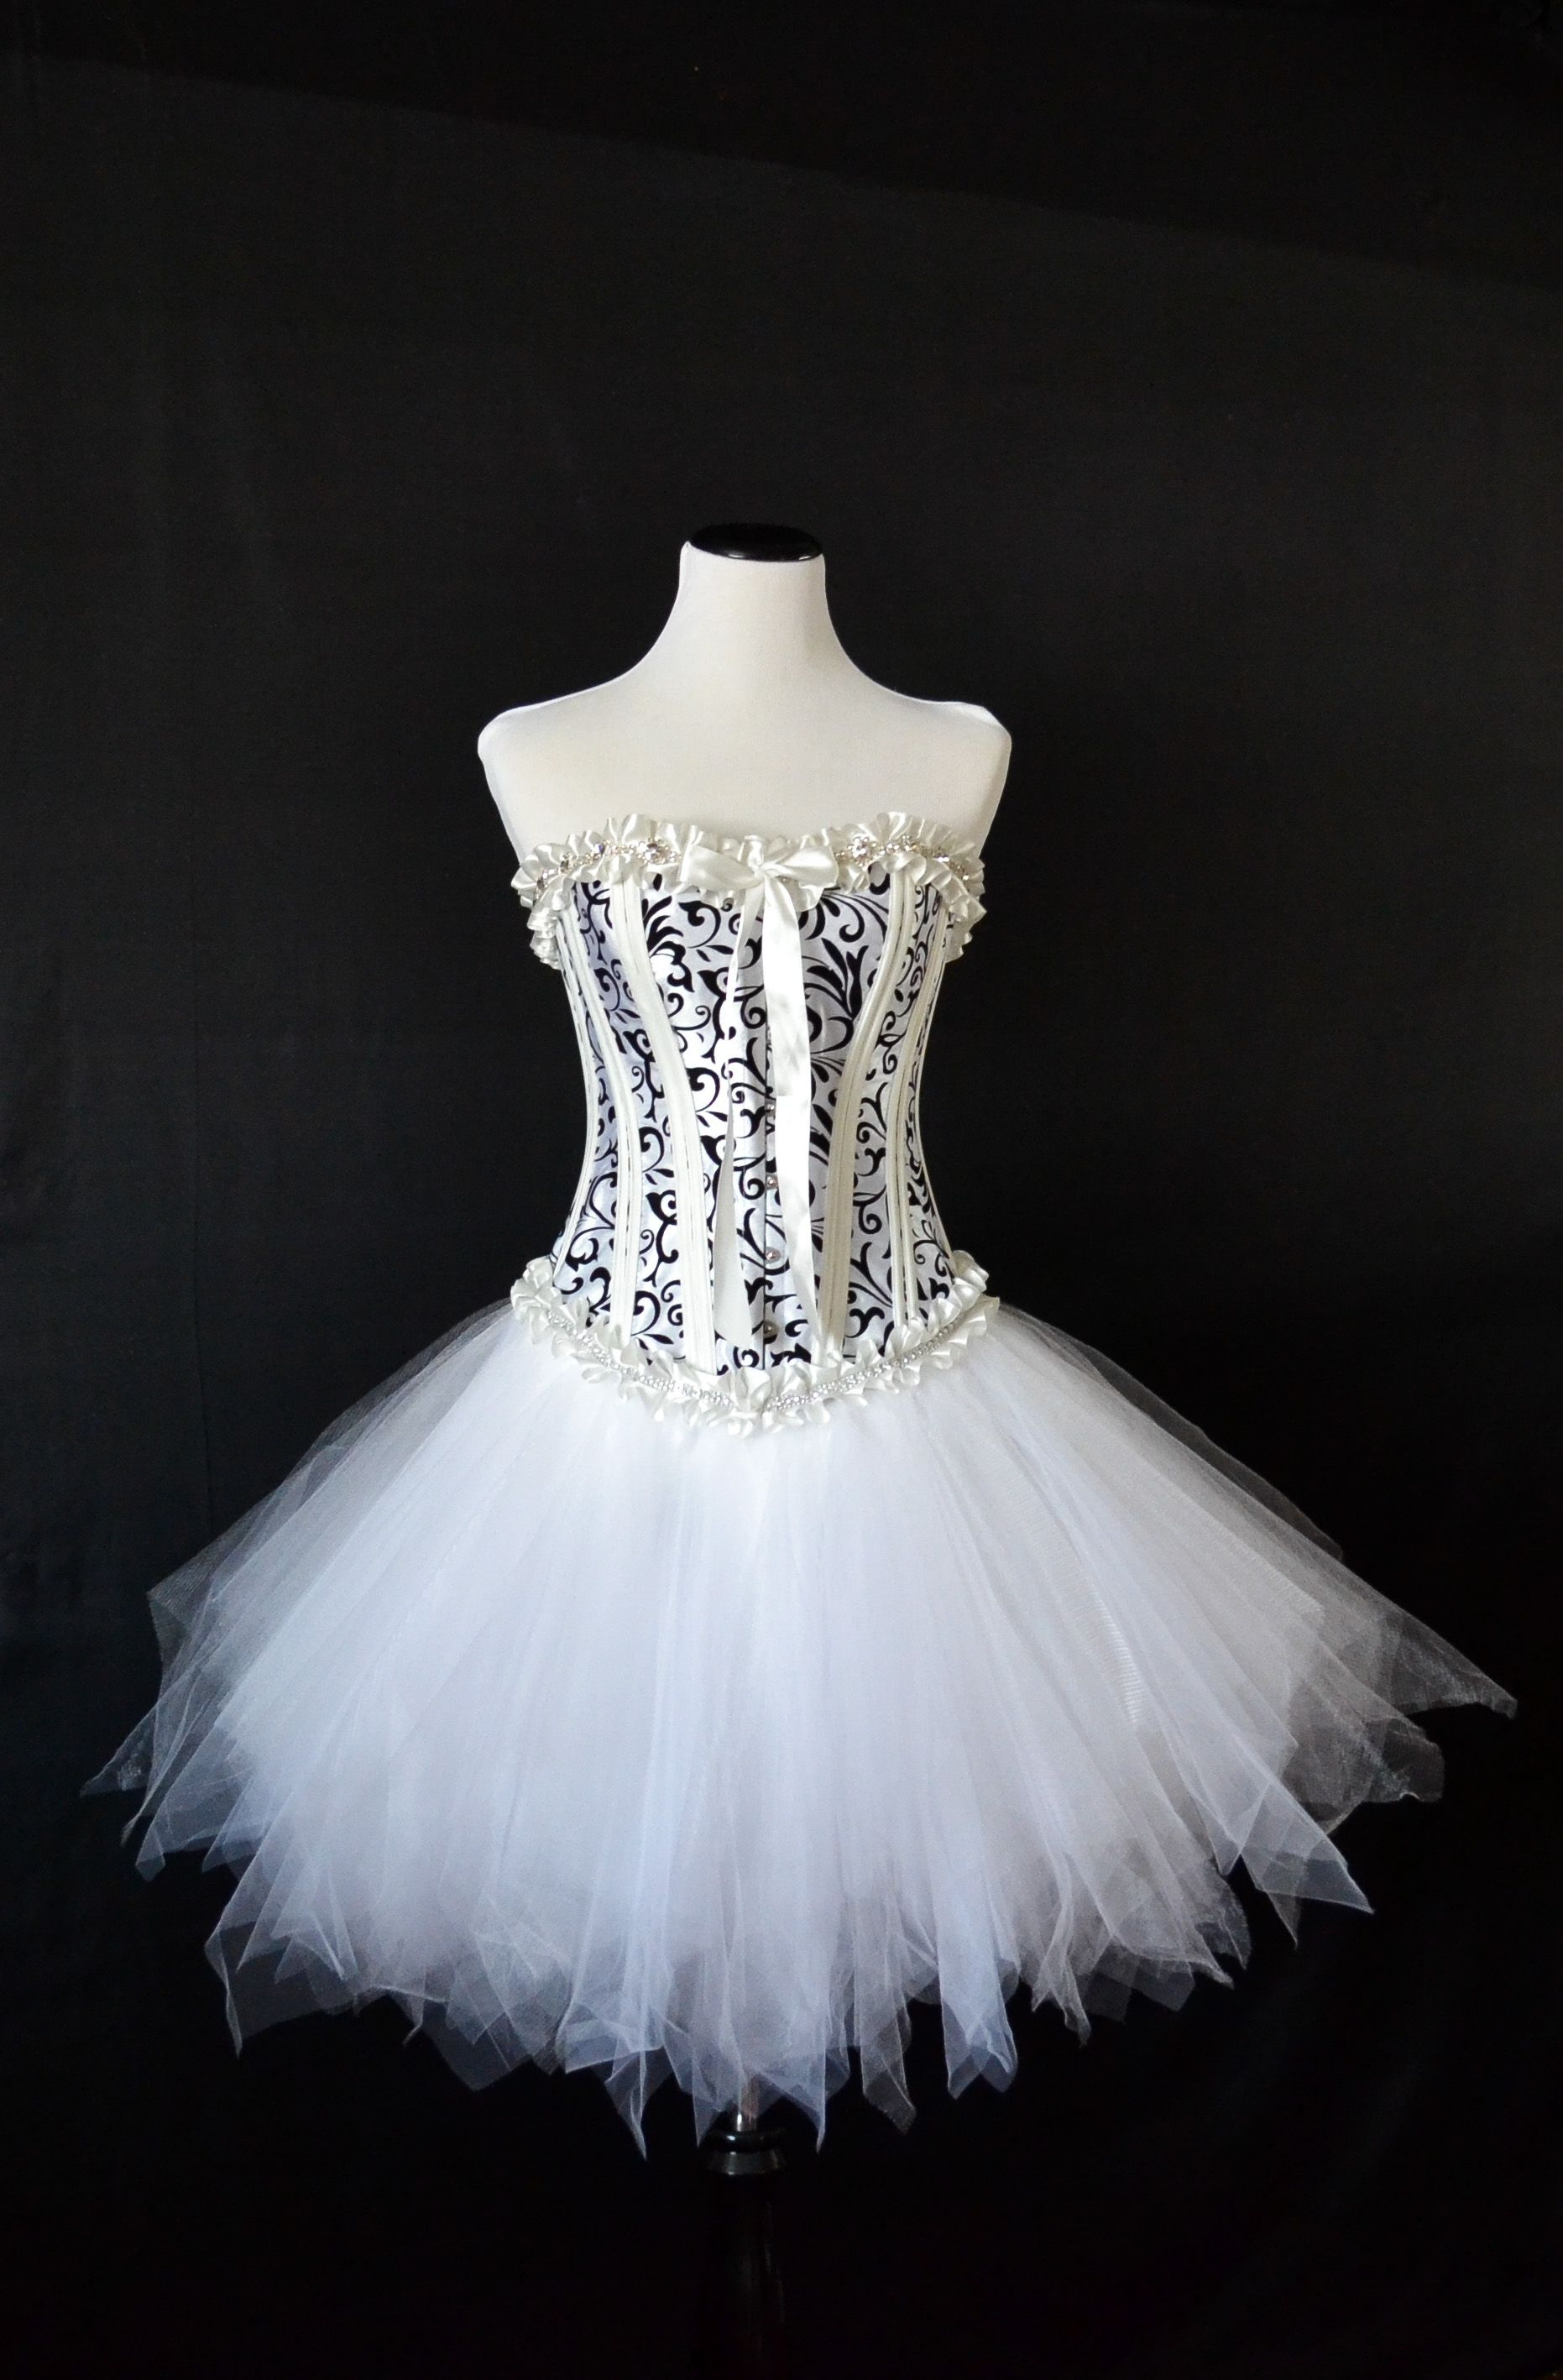 White Corset Dress Super Sparkly Trim Fluffy Almost Whimsical Tulle Skirt Cute Cute Cute Www Etsy Com Shop Lad Corset Dress White Tulle Skirt Dresses [ 2835 x 1862 Pixel ]